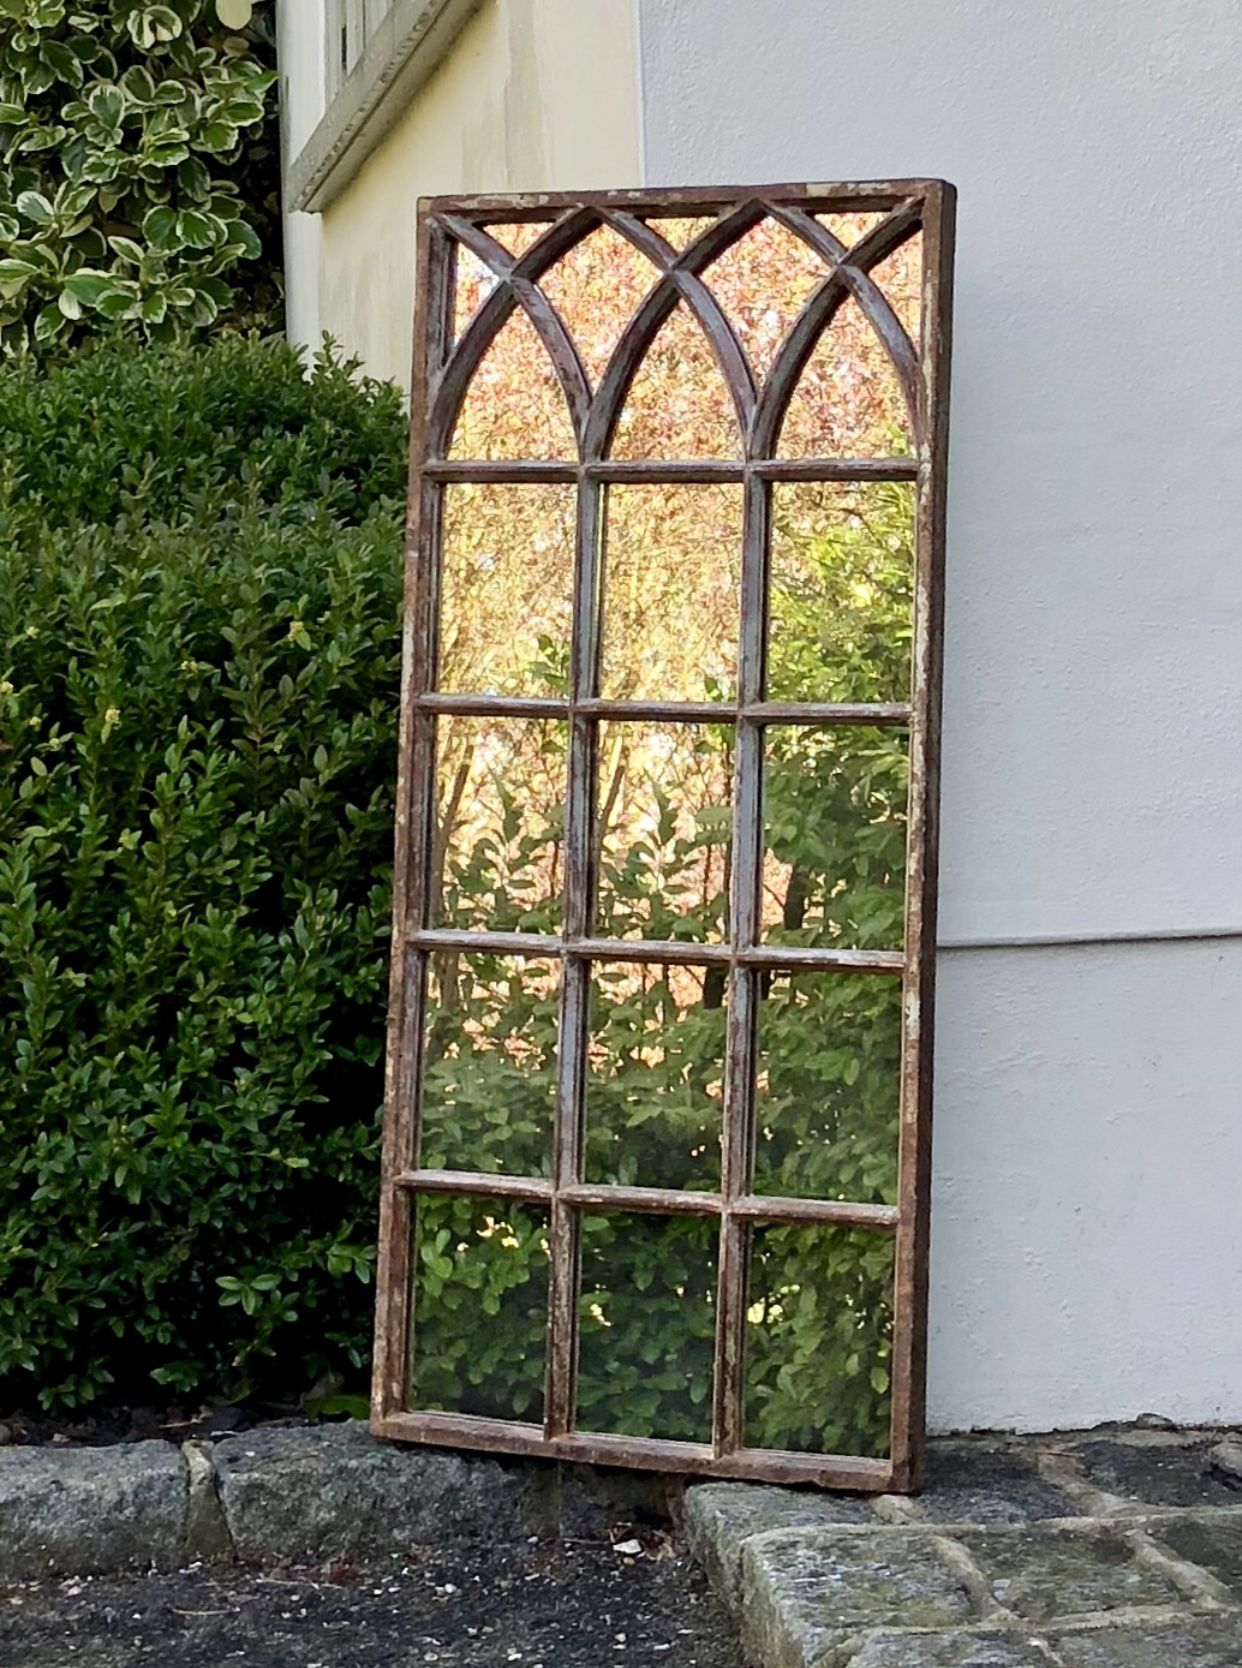 Vintage Window Mirror Home And A Garden Feature Garden Mirrors Garden Features Window Mirror